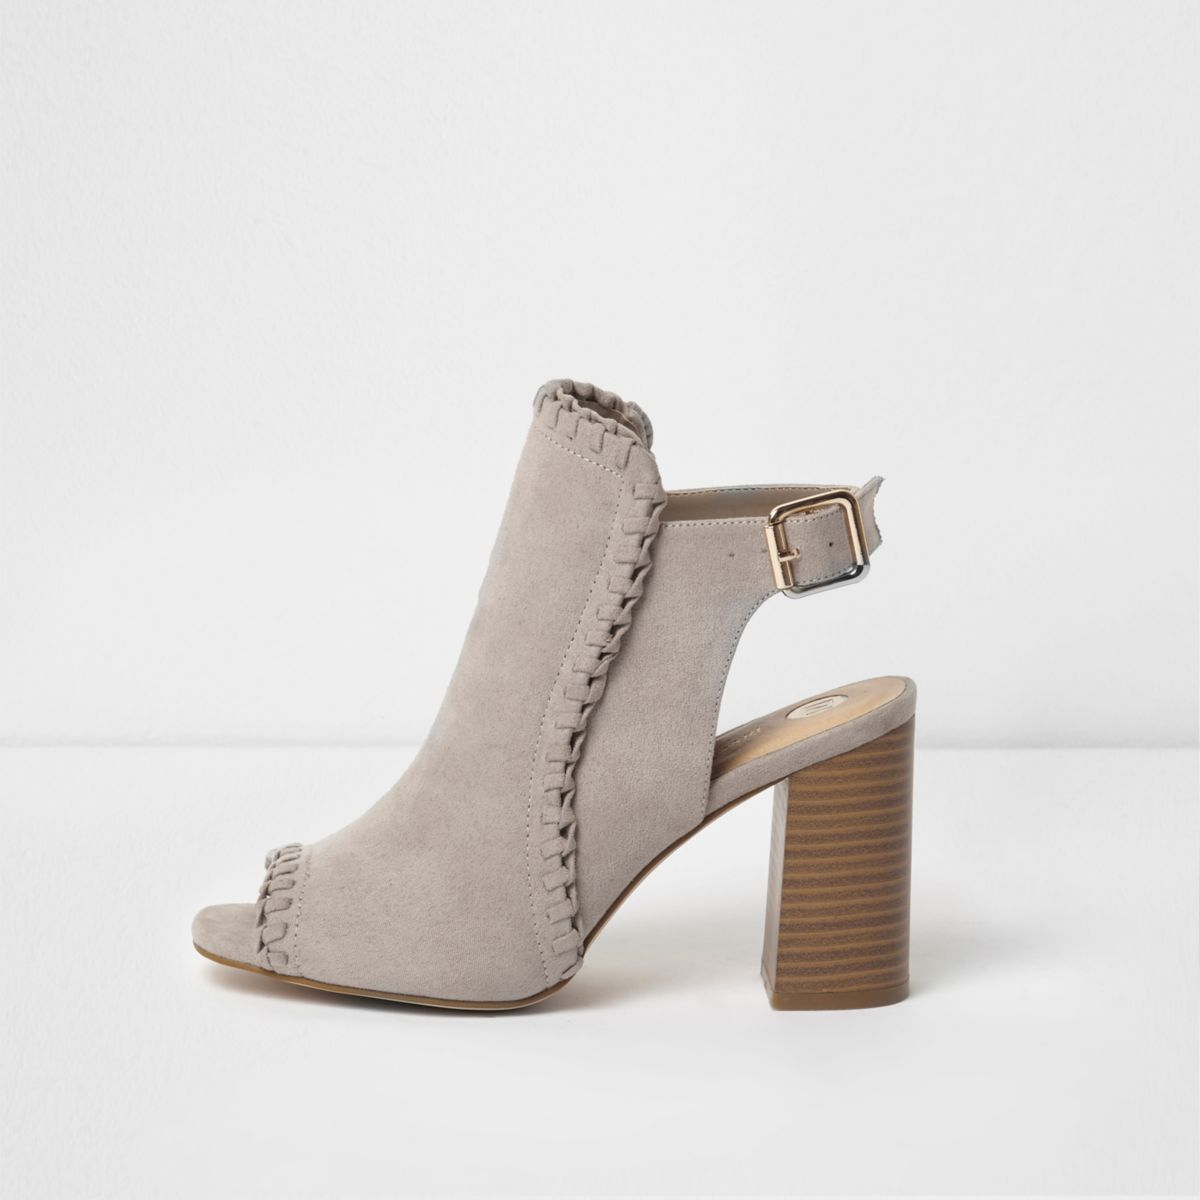 Add vintage appeal to any look with these Baylor ankle boots from Journee Collection.